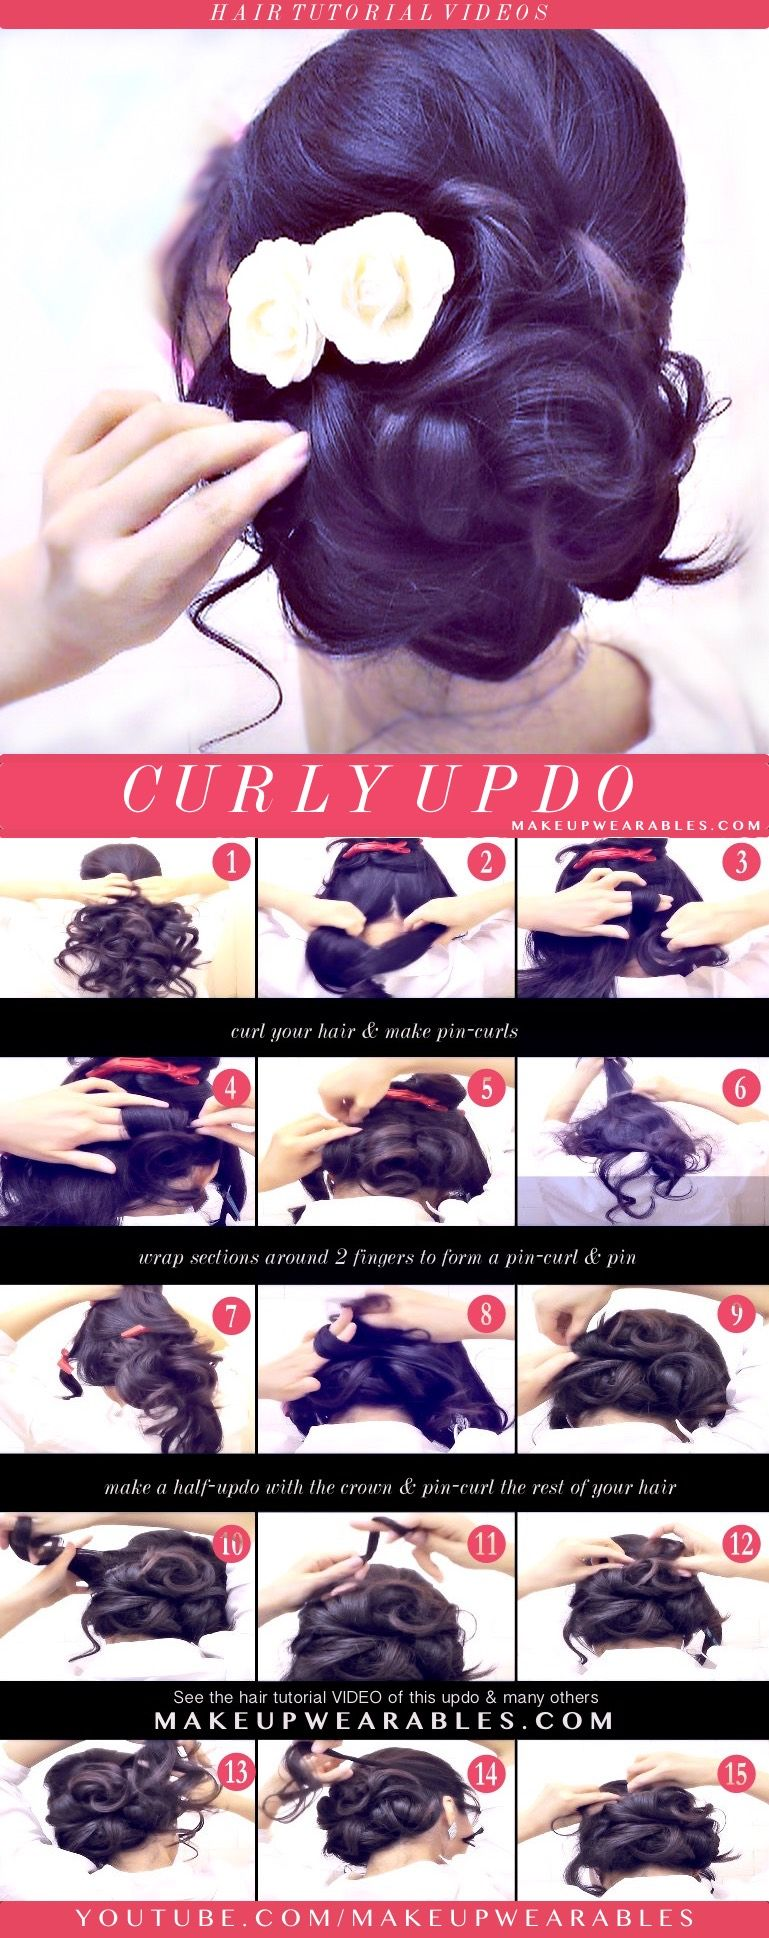 How to easy updo with curls hairstyles cute hair tutorial hair